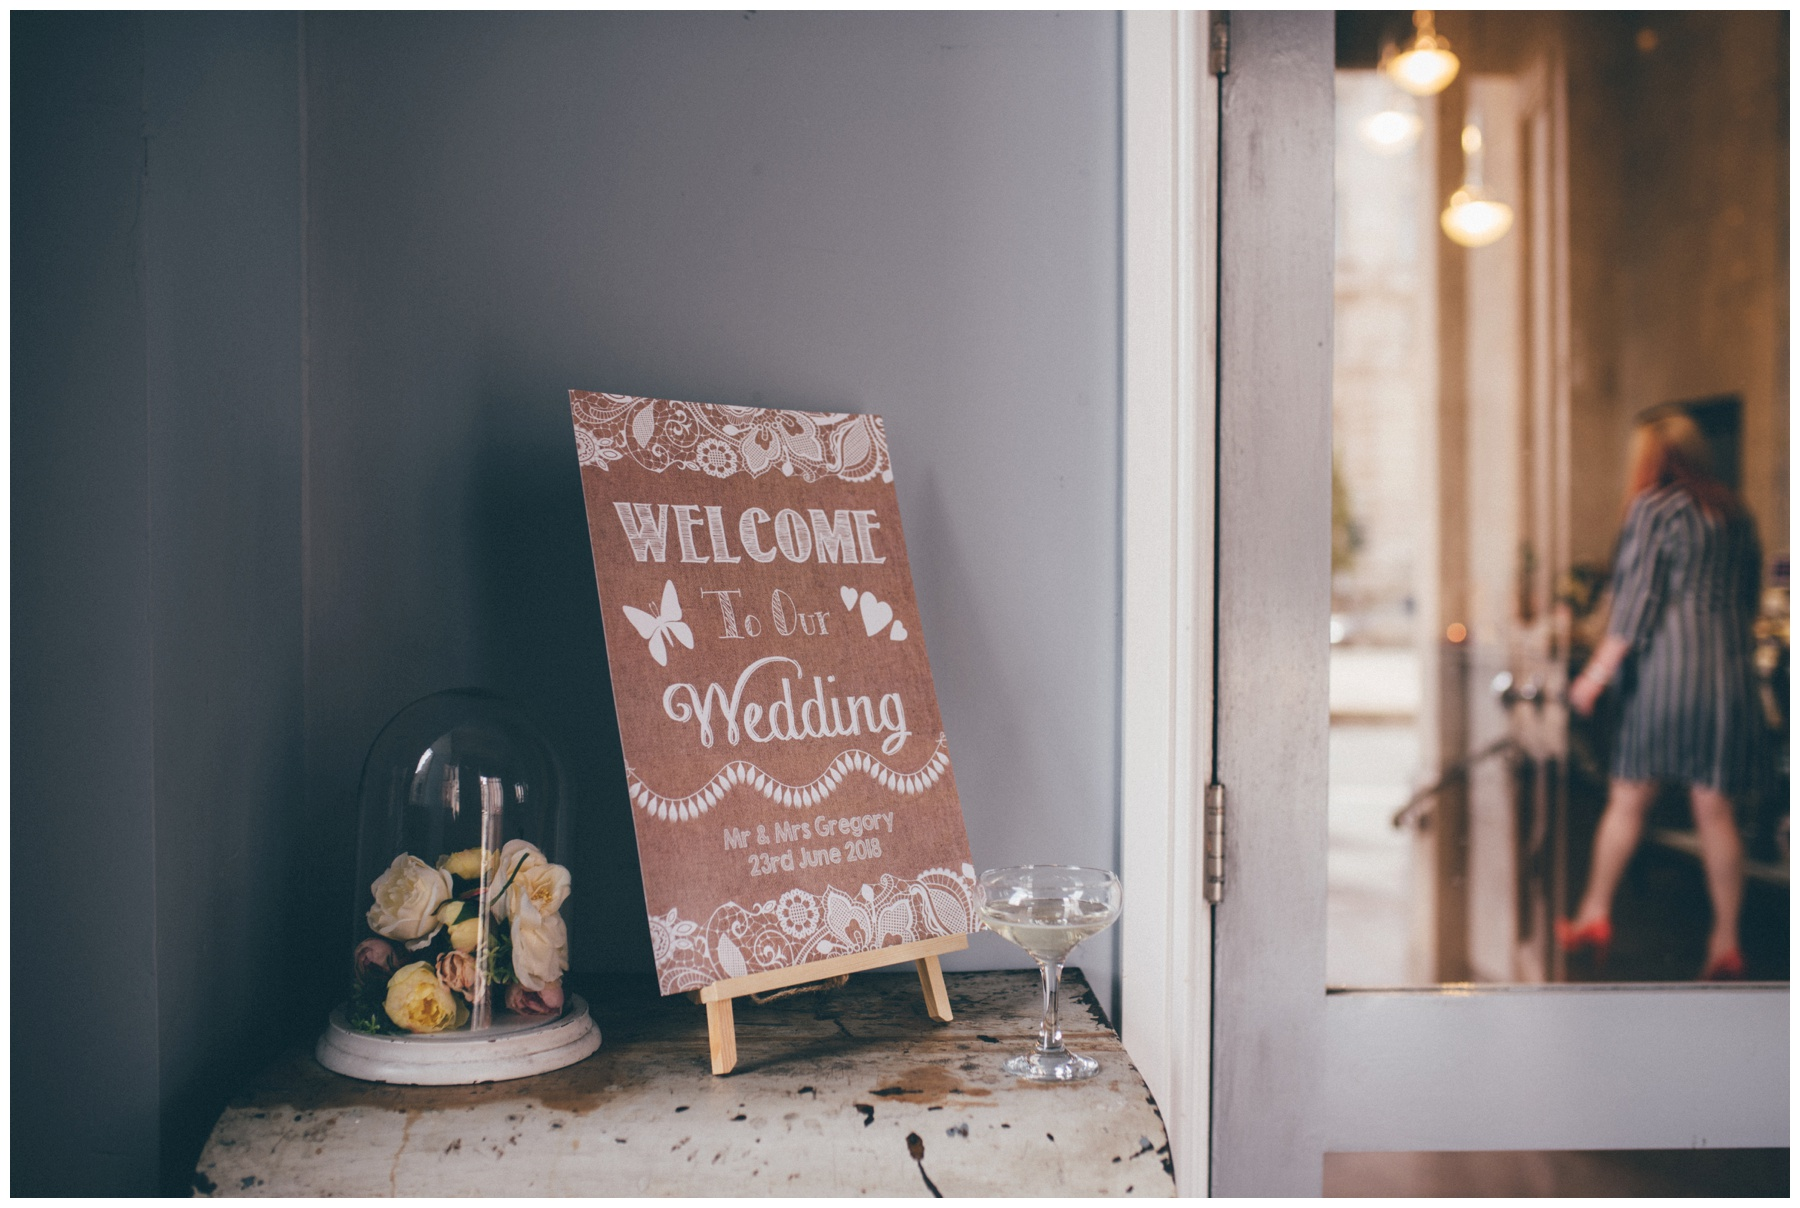 Welcome to the wedding sign at Wedding venue Oh Me Oh My in Liverpool City Centre.